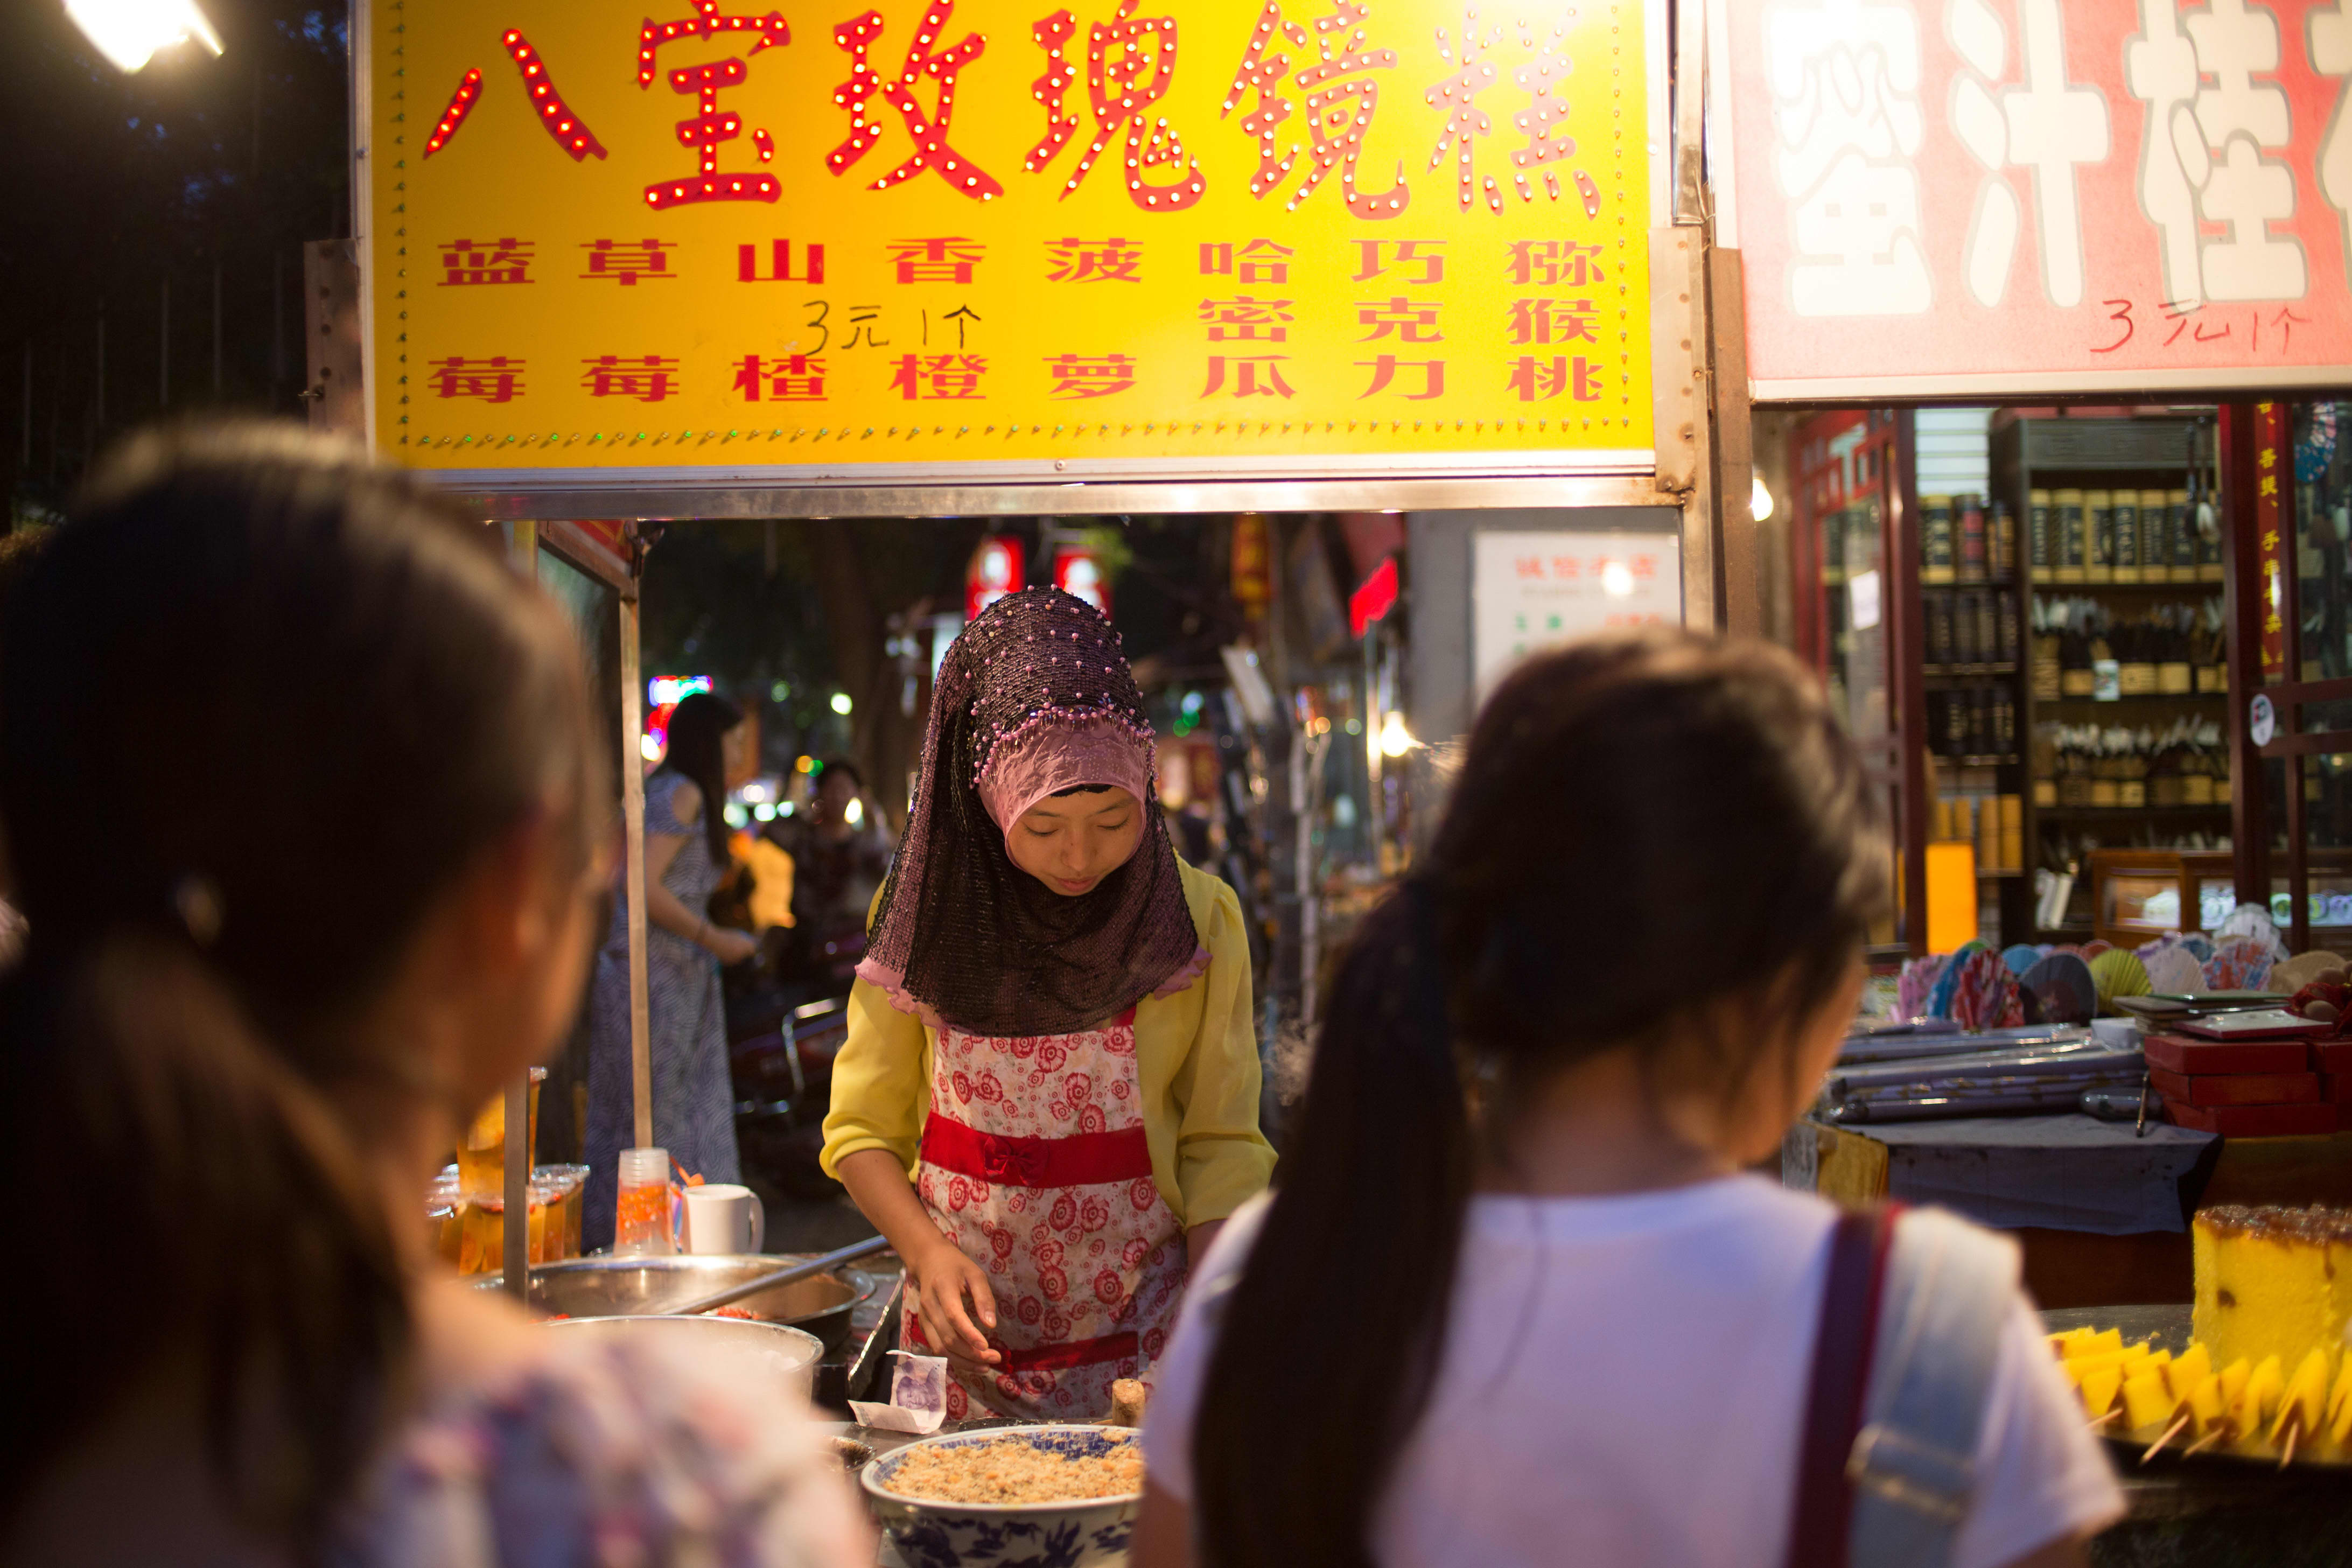 China wants a bite of the booming halal food market